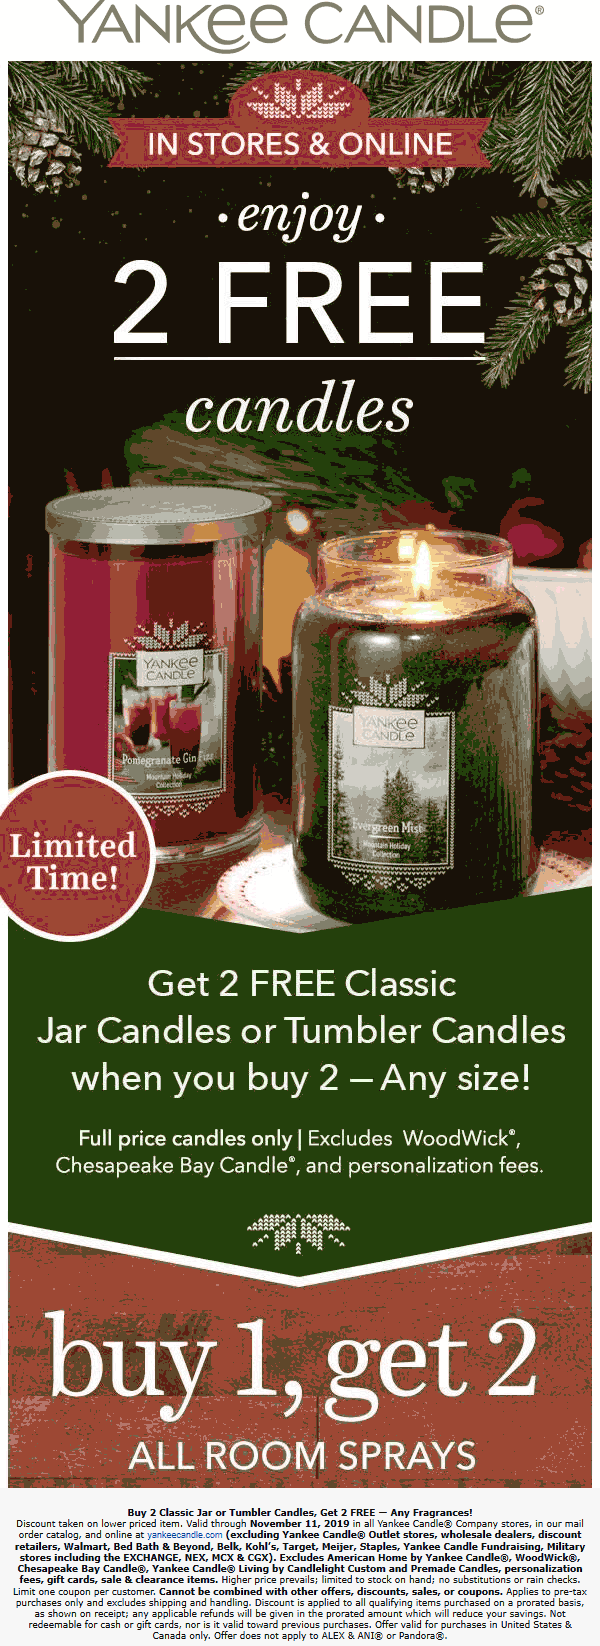 Yankee Candle Coupon January 2020 4-for-2 on candles & 3-for-1 room sprays at Yankee Candle, ditto online